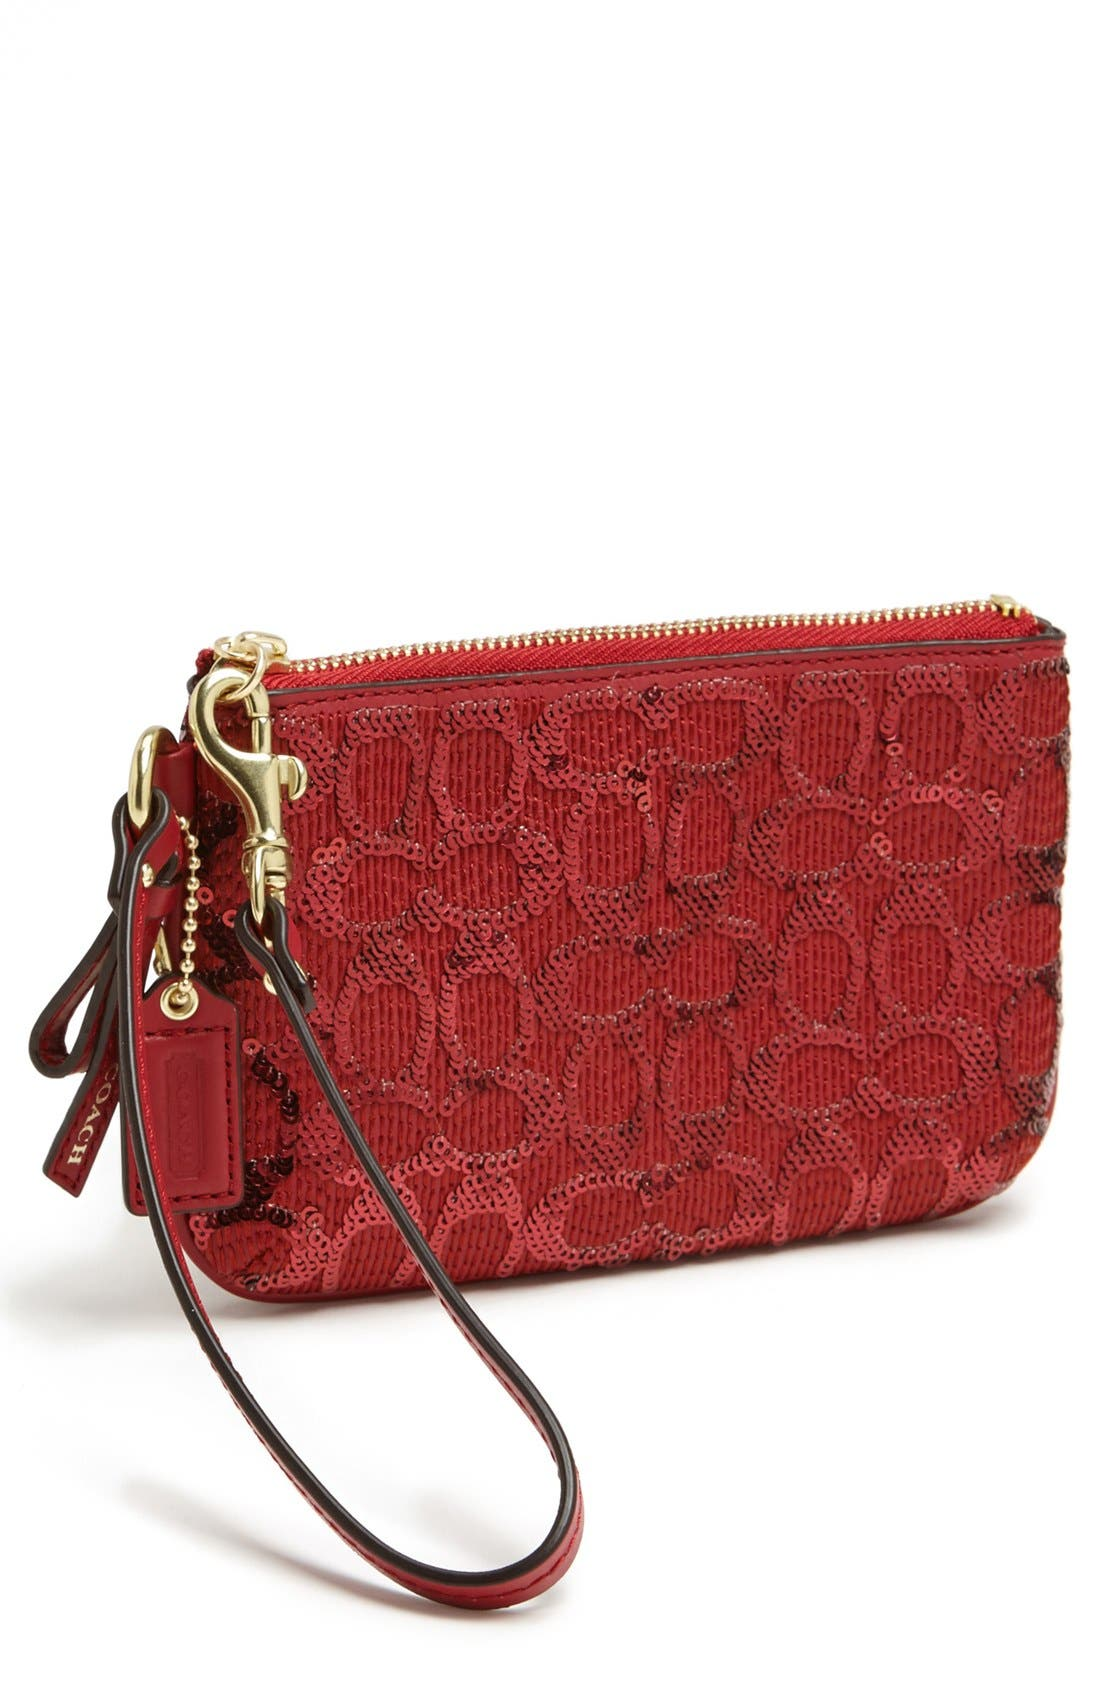 Main Image - COACH 'Signature' Sequin Wristlet